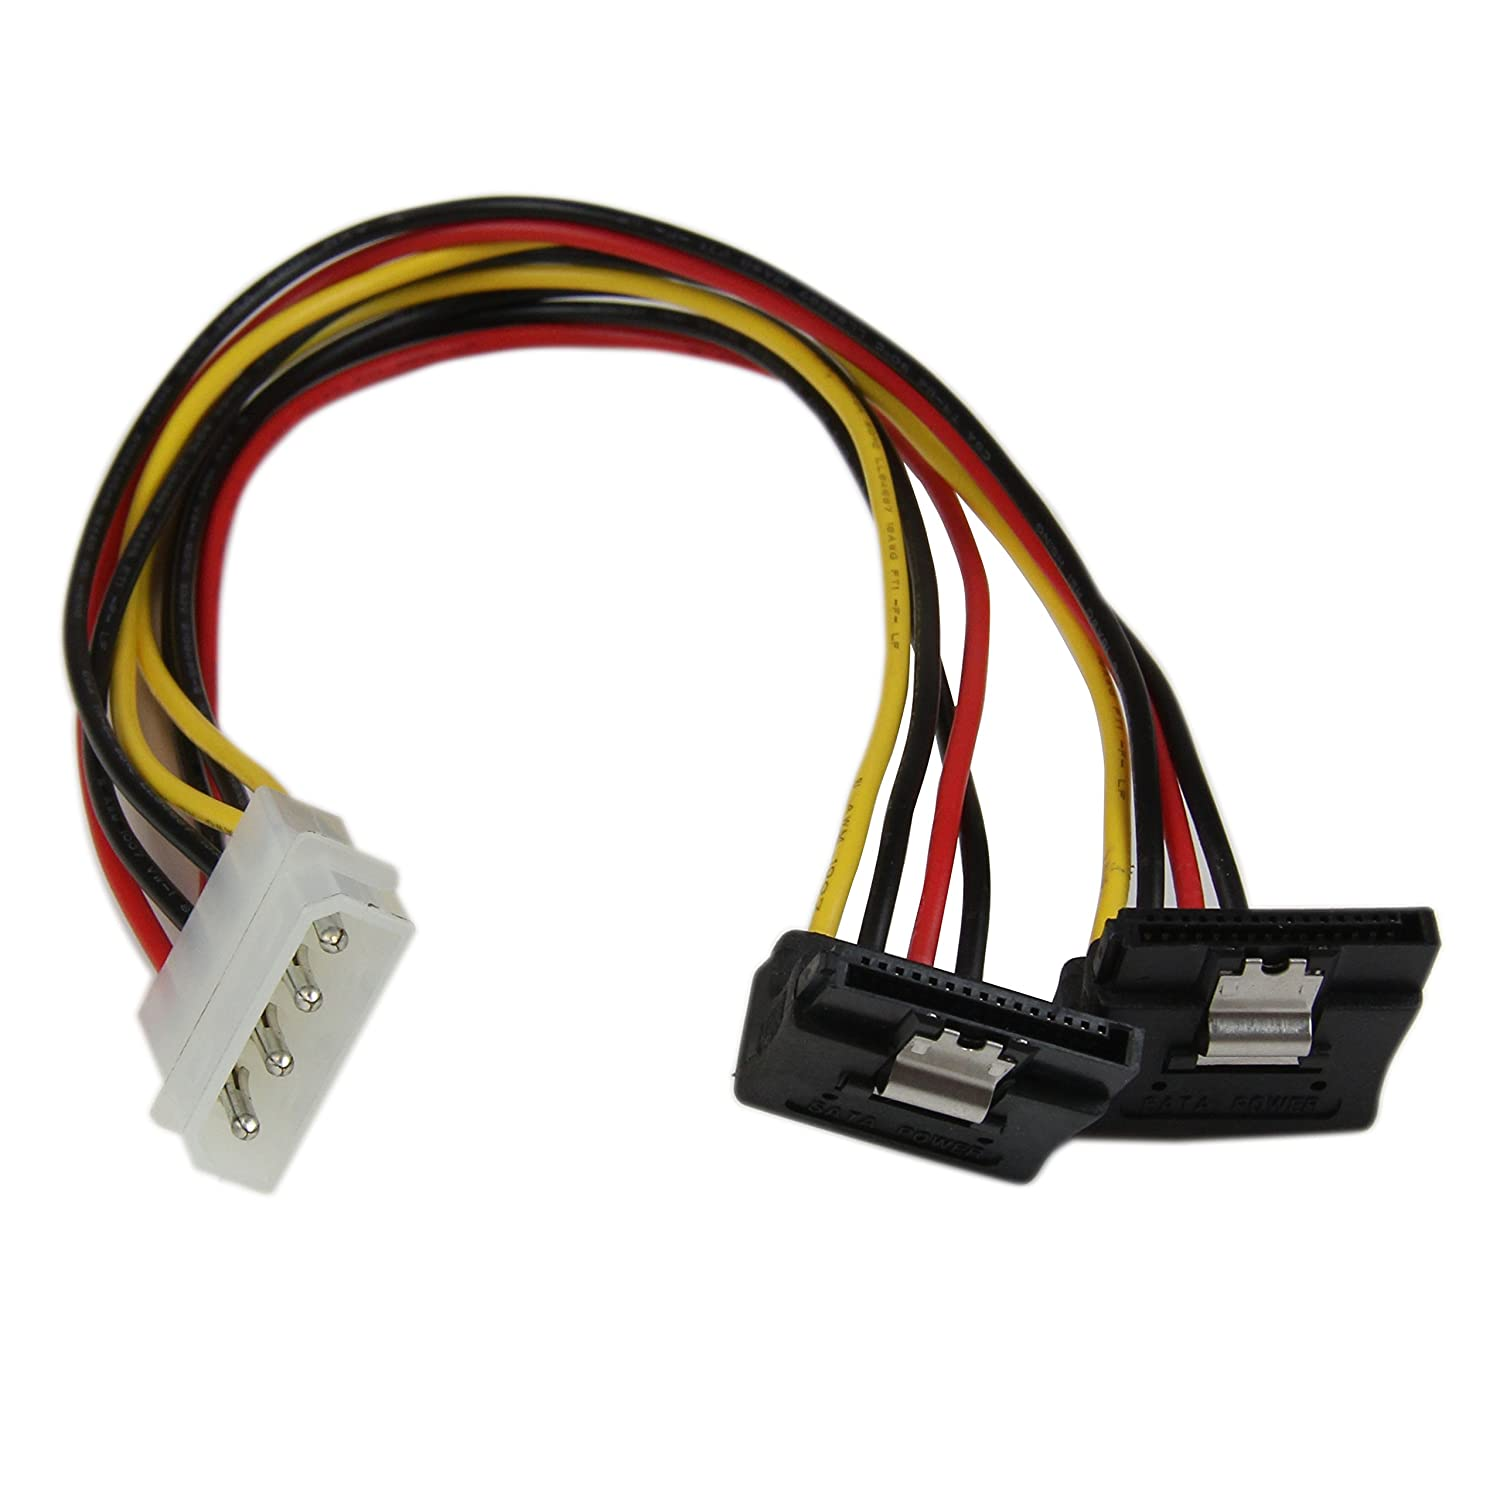 SATA Female to Molex Male Power Cable 12 inch SATA to LP4 Power Adapter LP4SATAFM12 StarTech.com 12in SATA to Molex LP4 Power Cable Adapter F//M